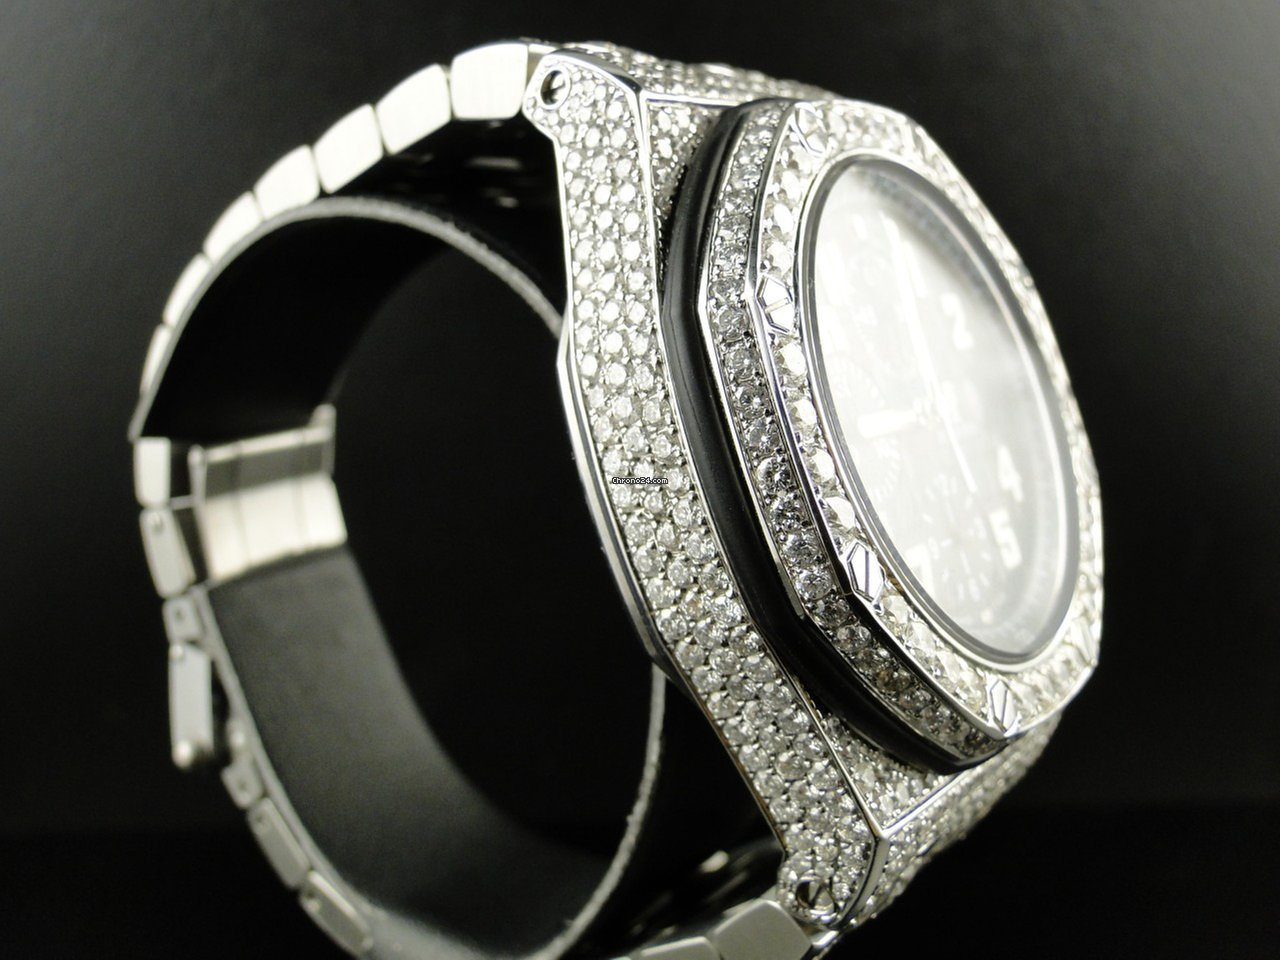 Audemars Piguet Mens Iced Out Royal Oak Offs Diamond For 30 000 From A Trusted Er On Chrono24